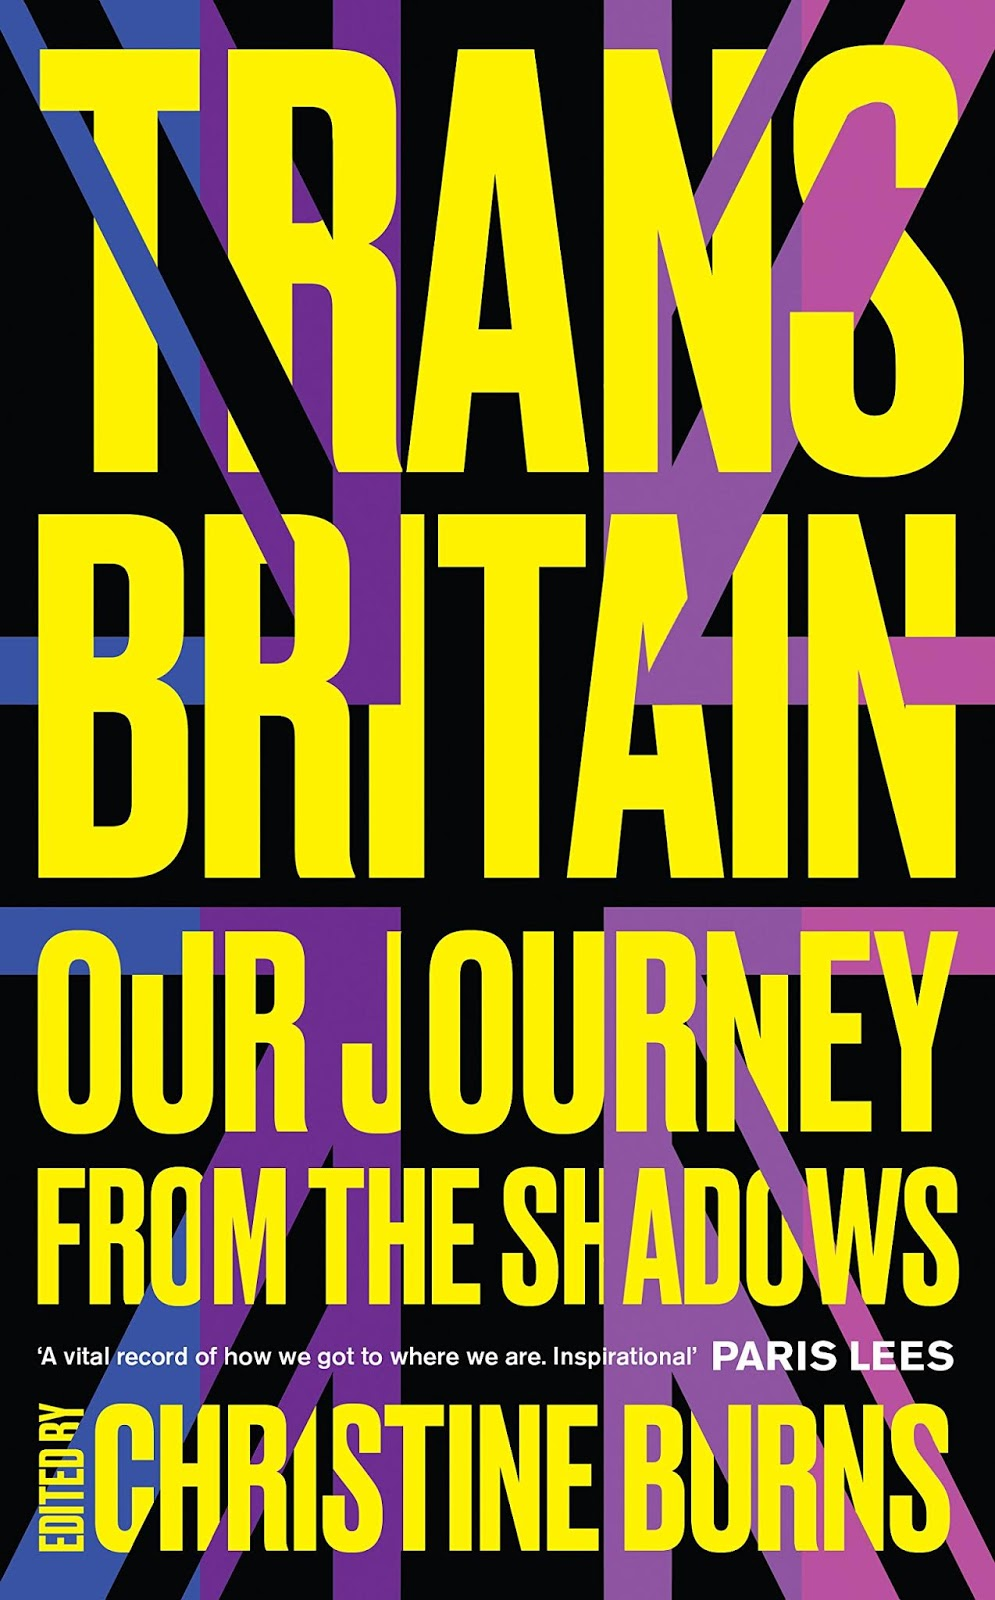 Trans Britain, ed. by Christine Burns